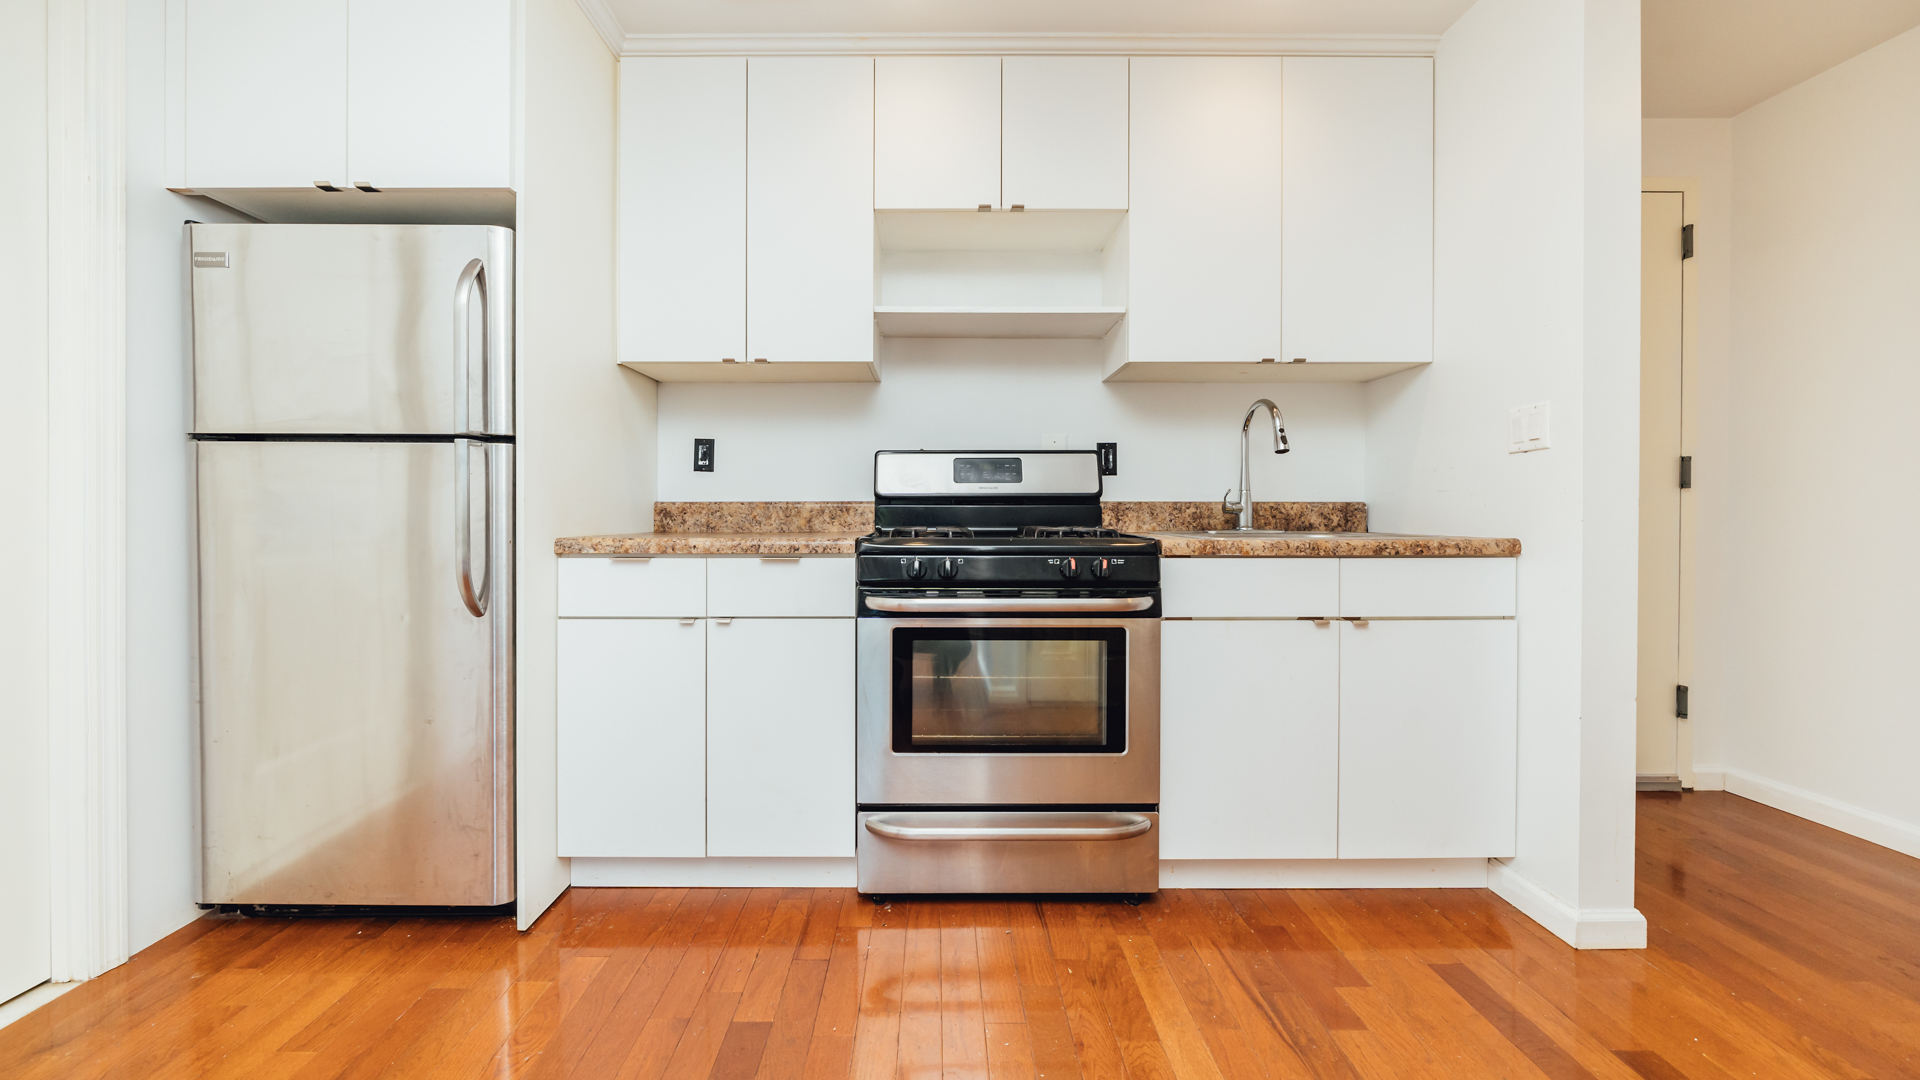 A kitchen with white cabinetry and hardwood floors.